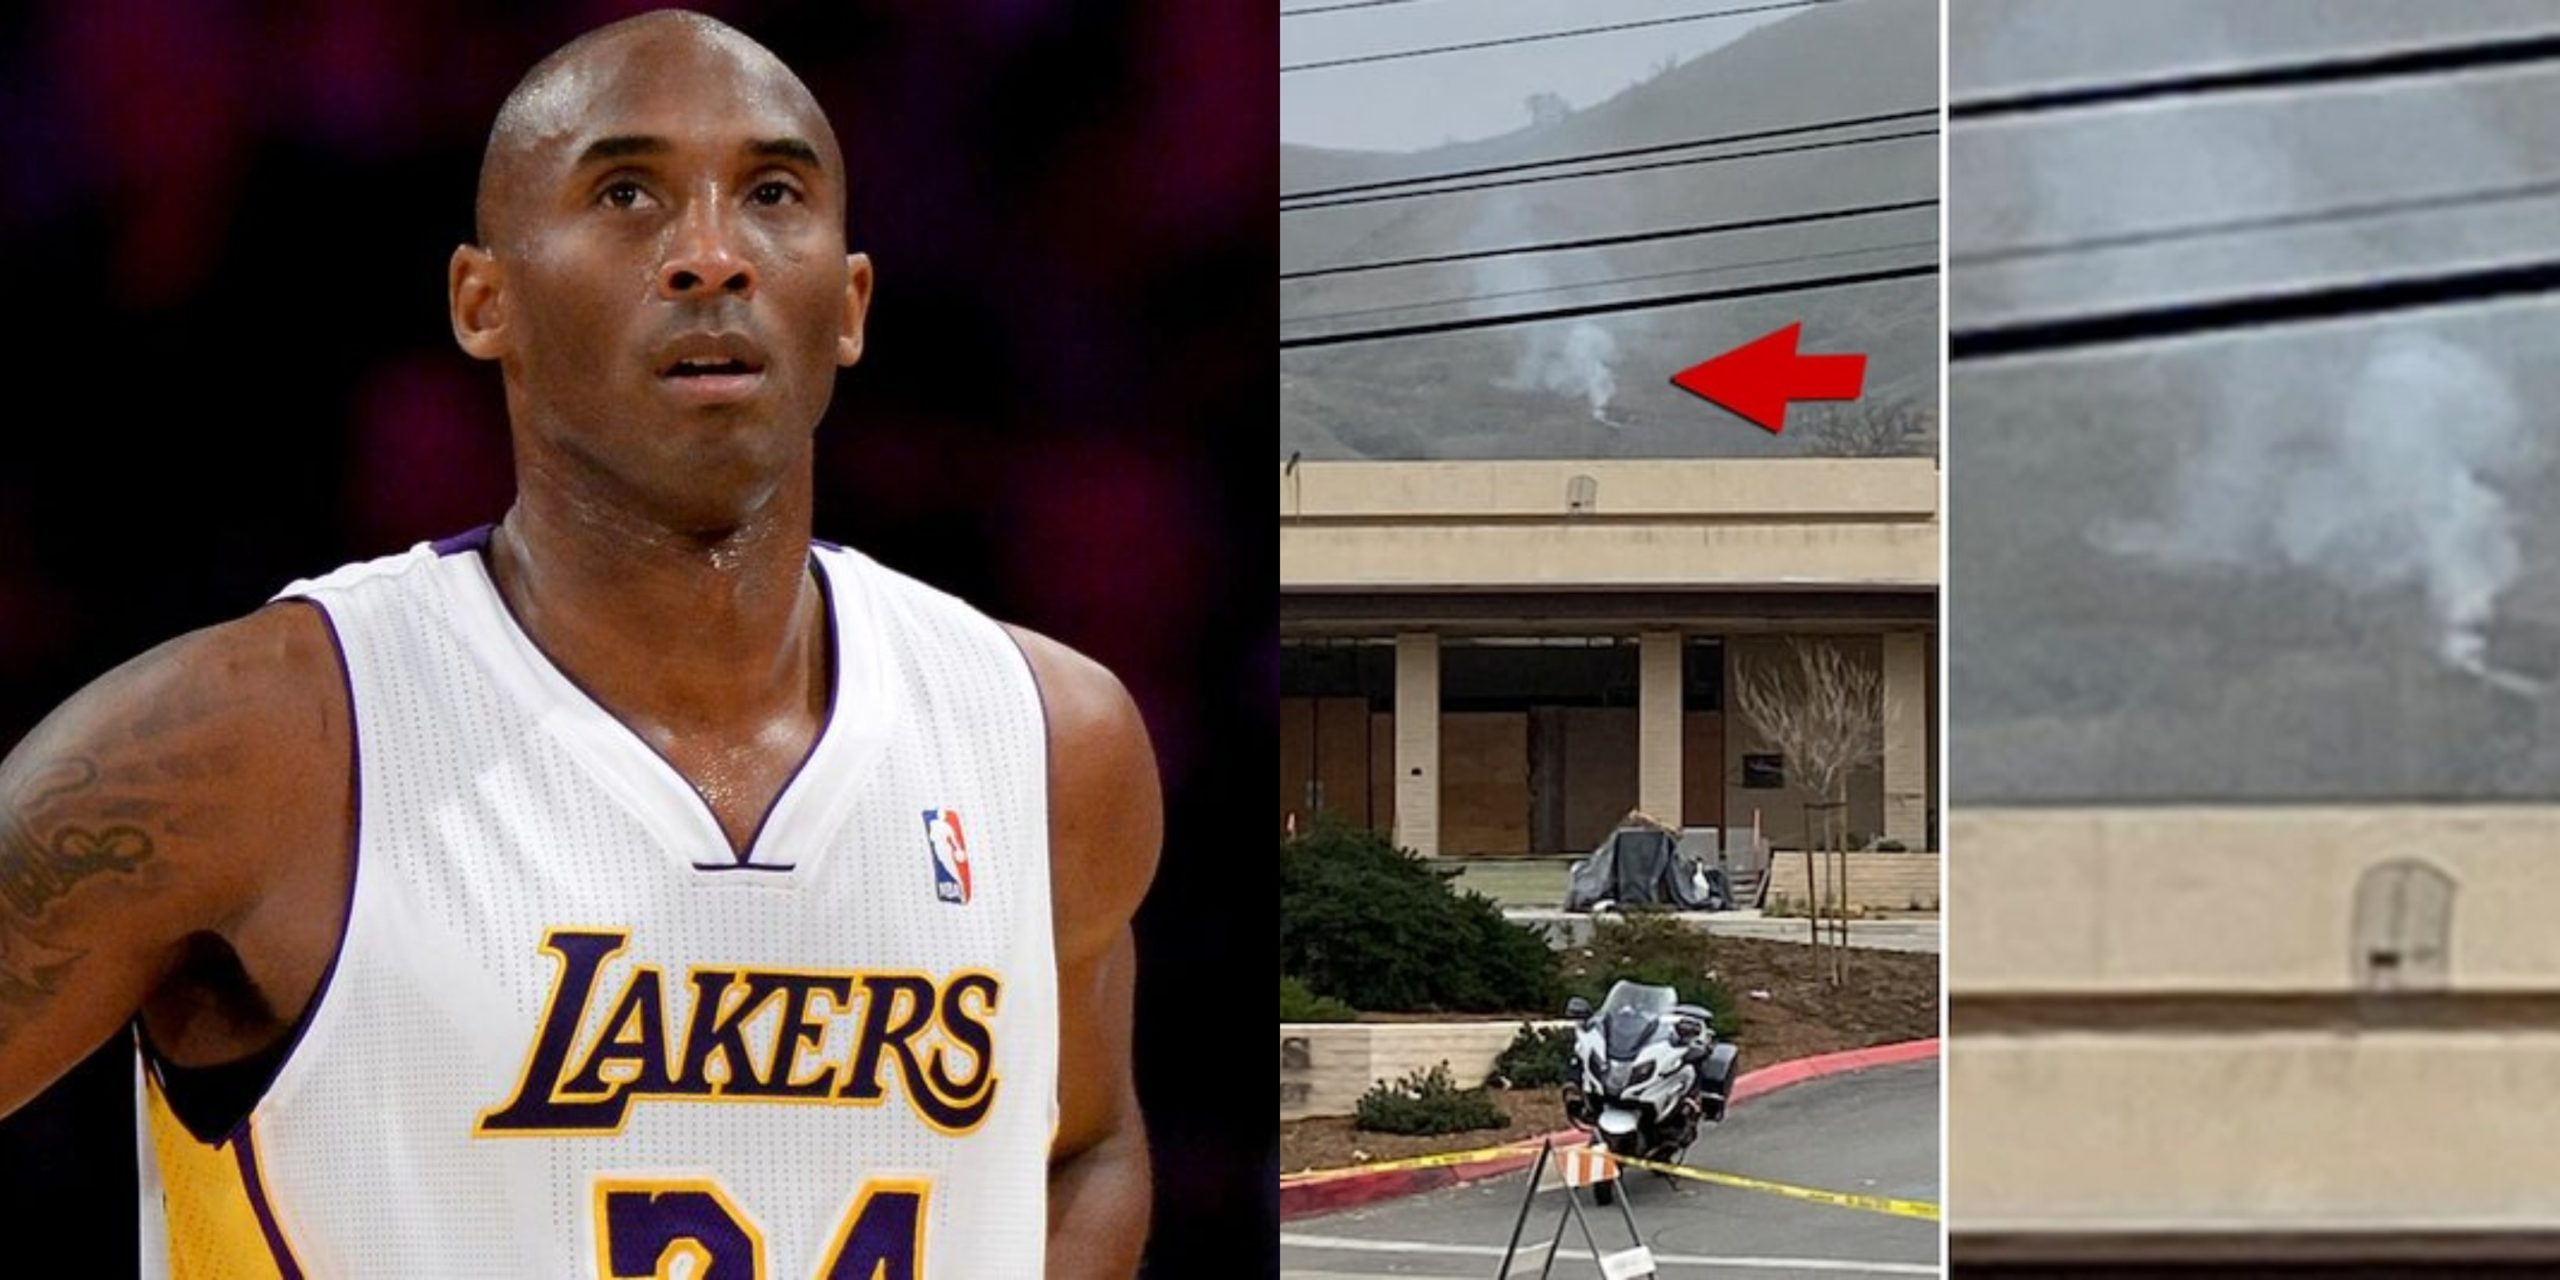 Man predicts Kobe Bryant's death on Twitter 24hrs before it happened - See the chilly thing he said